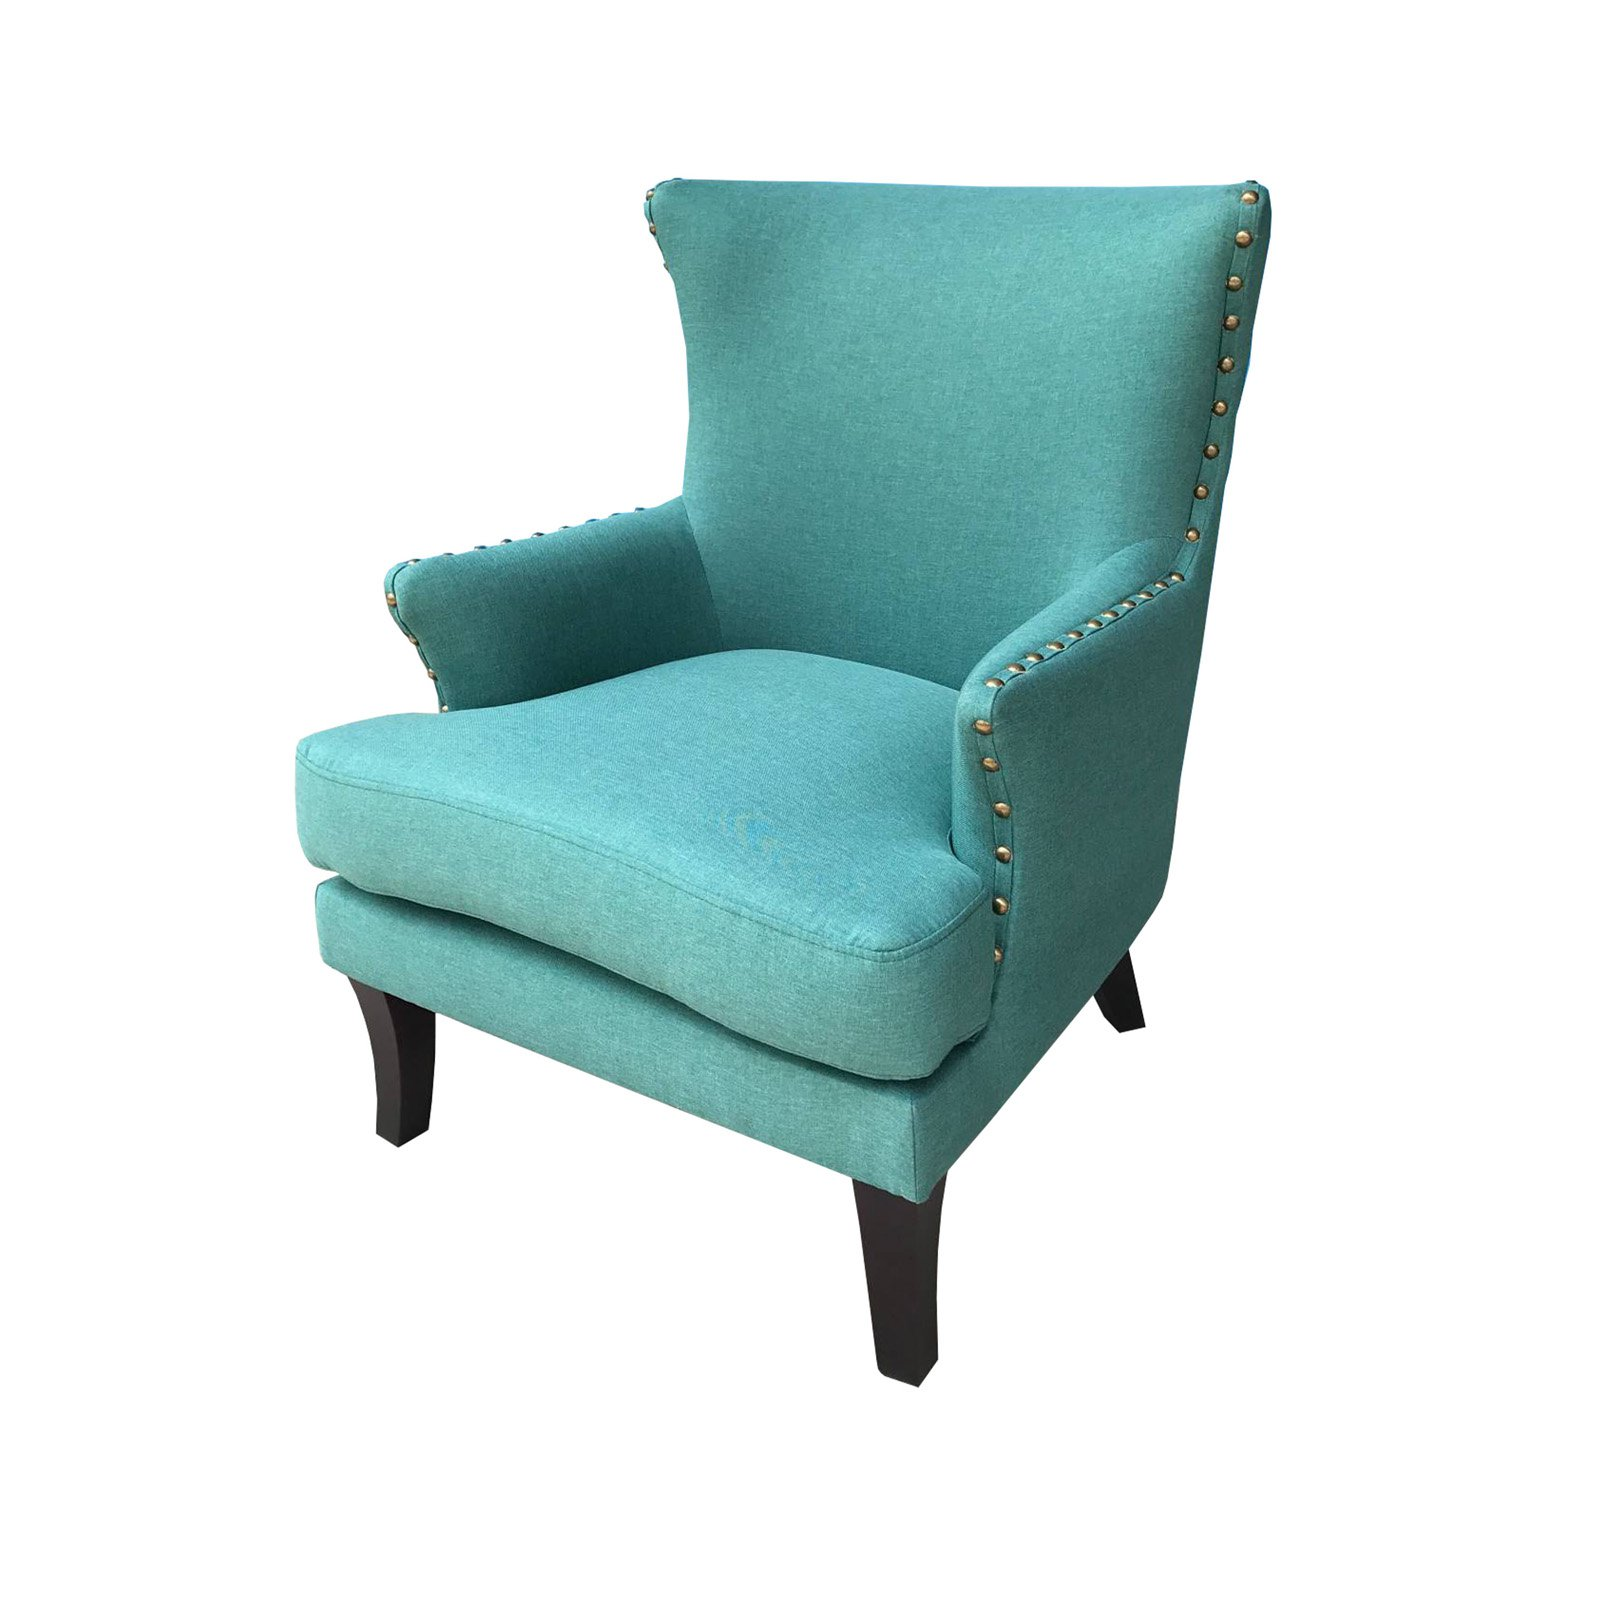 Teal Wingback Chair Incadozo Bethany Upholstered Wingback Accent Chair